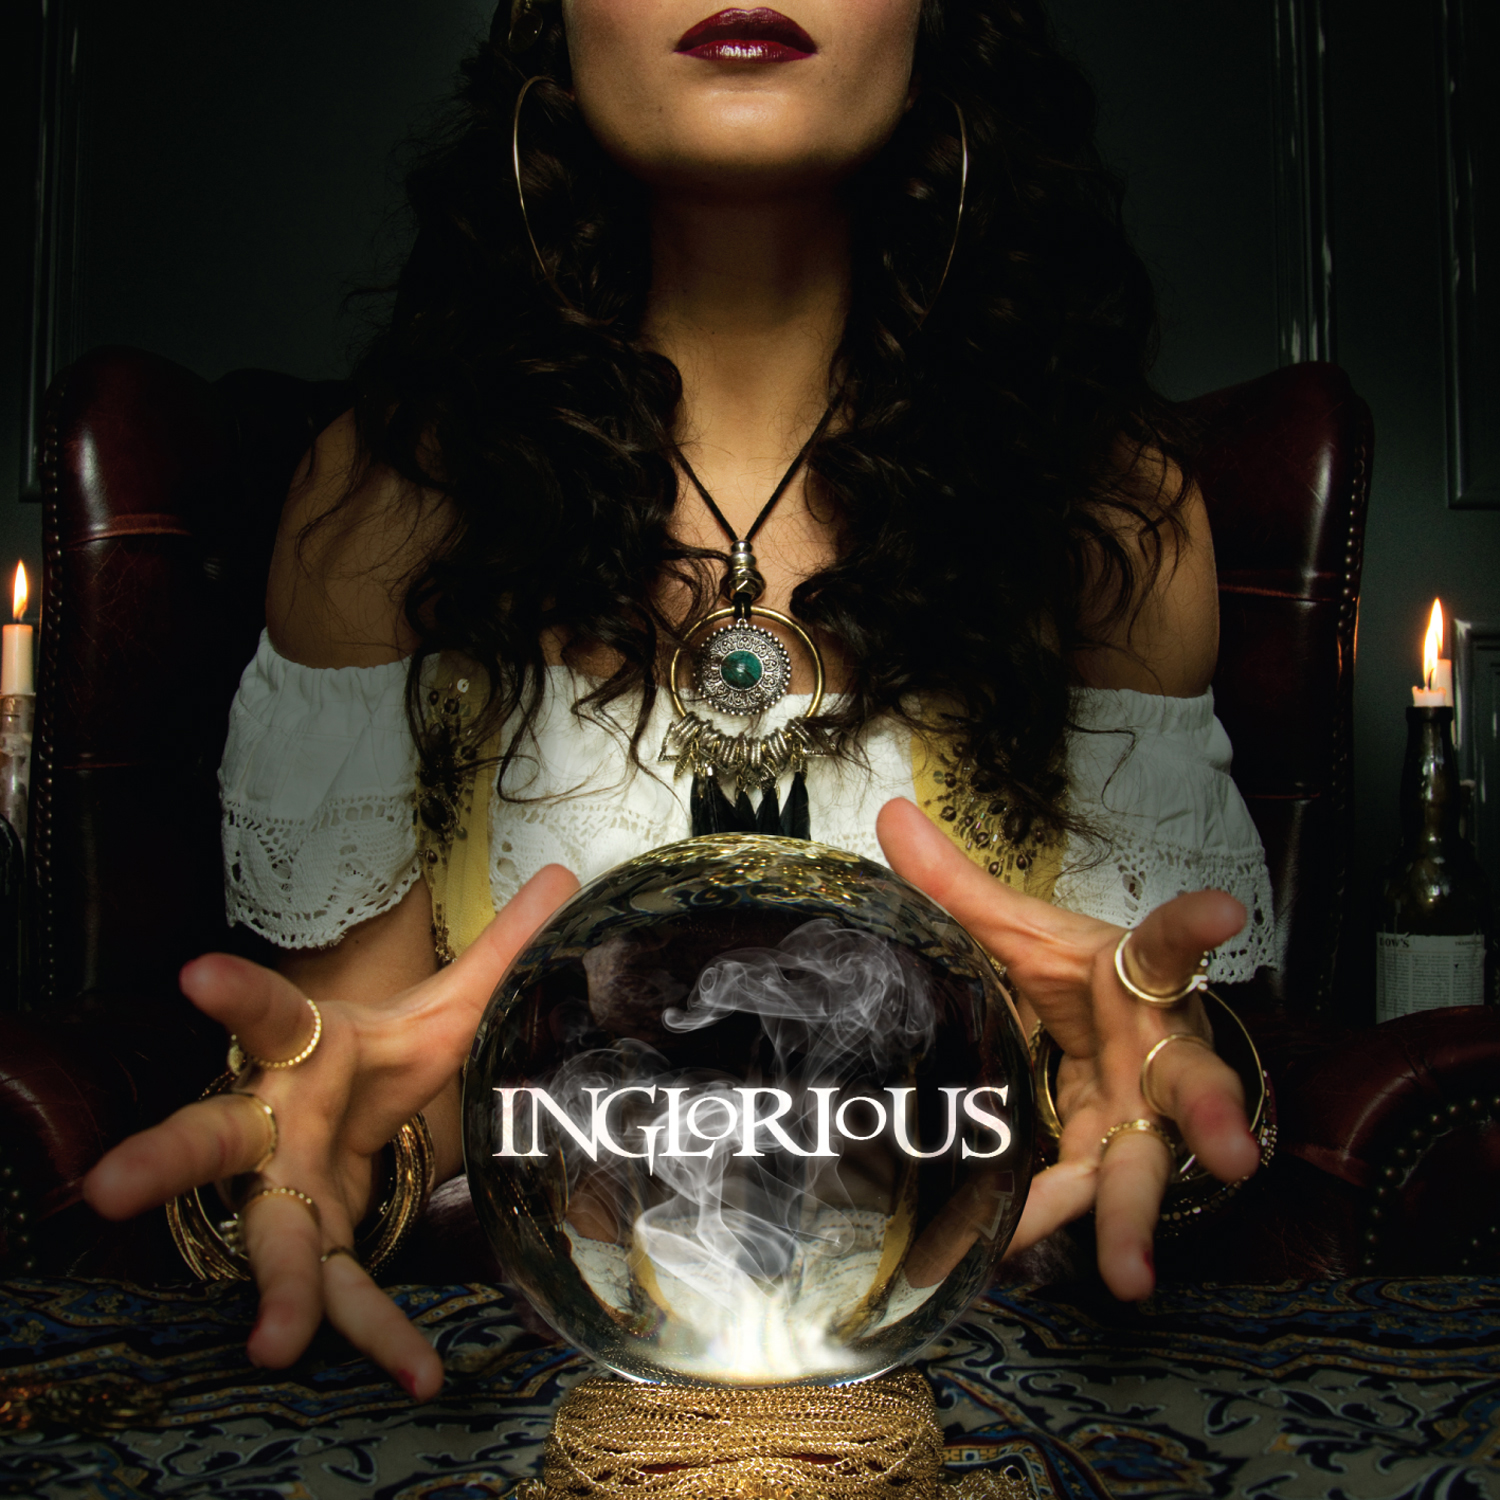 Inglorious - Inglorious - Album Cover